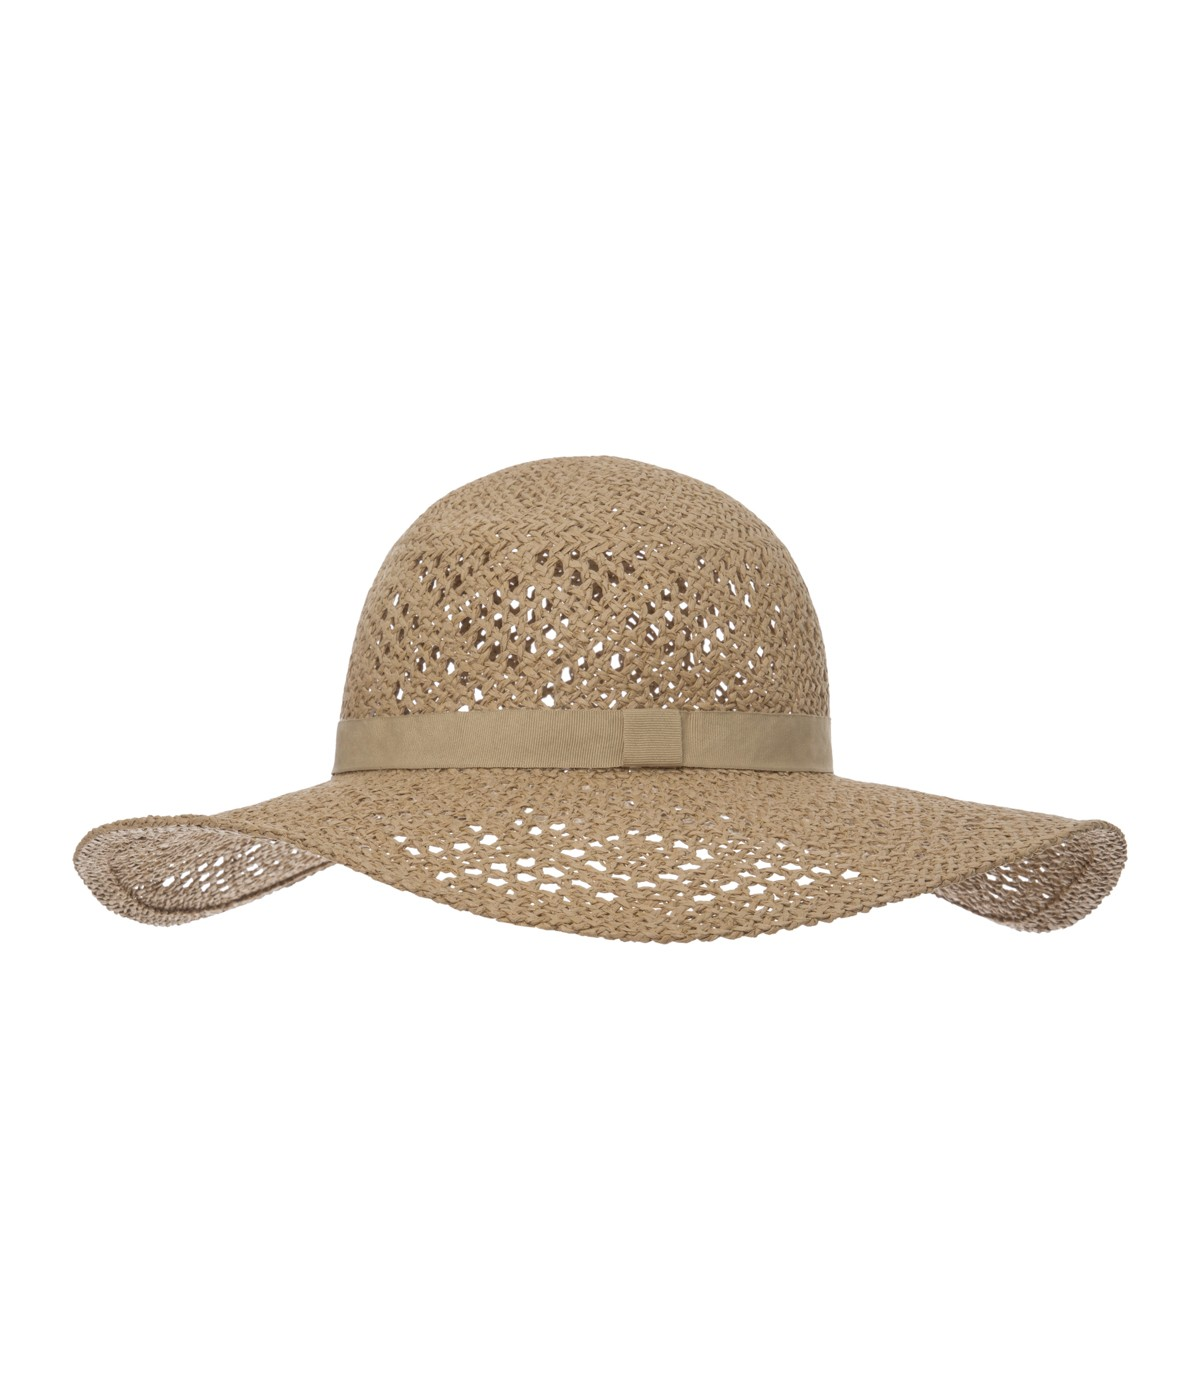 Straw Pore Hat